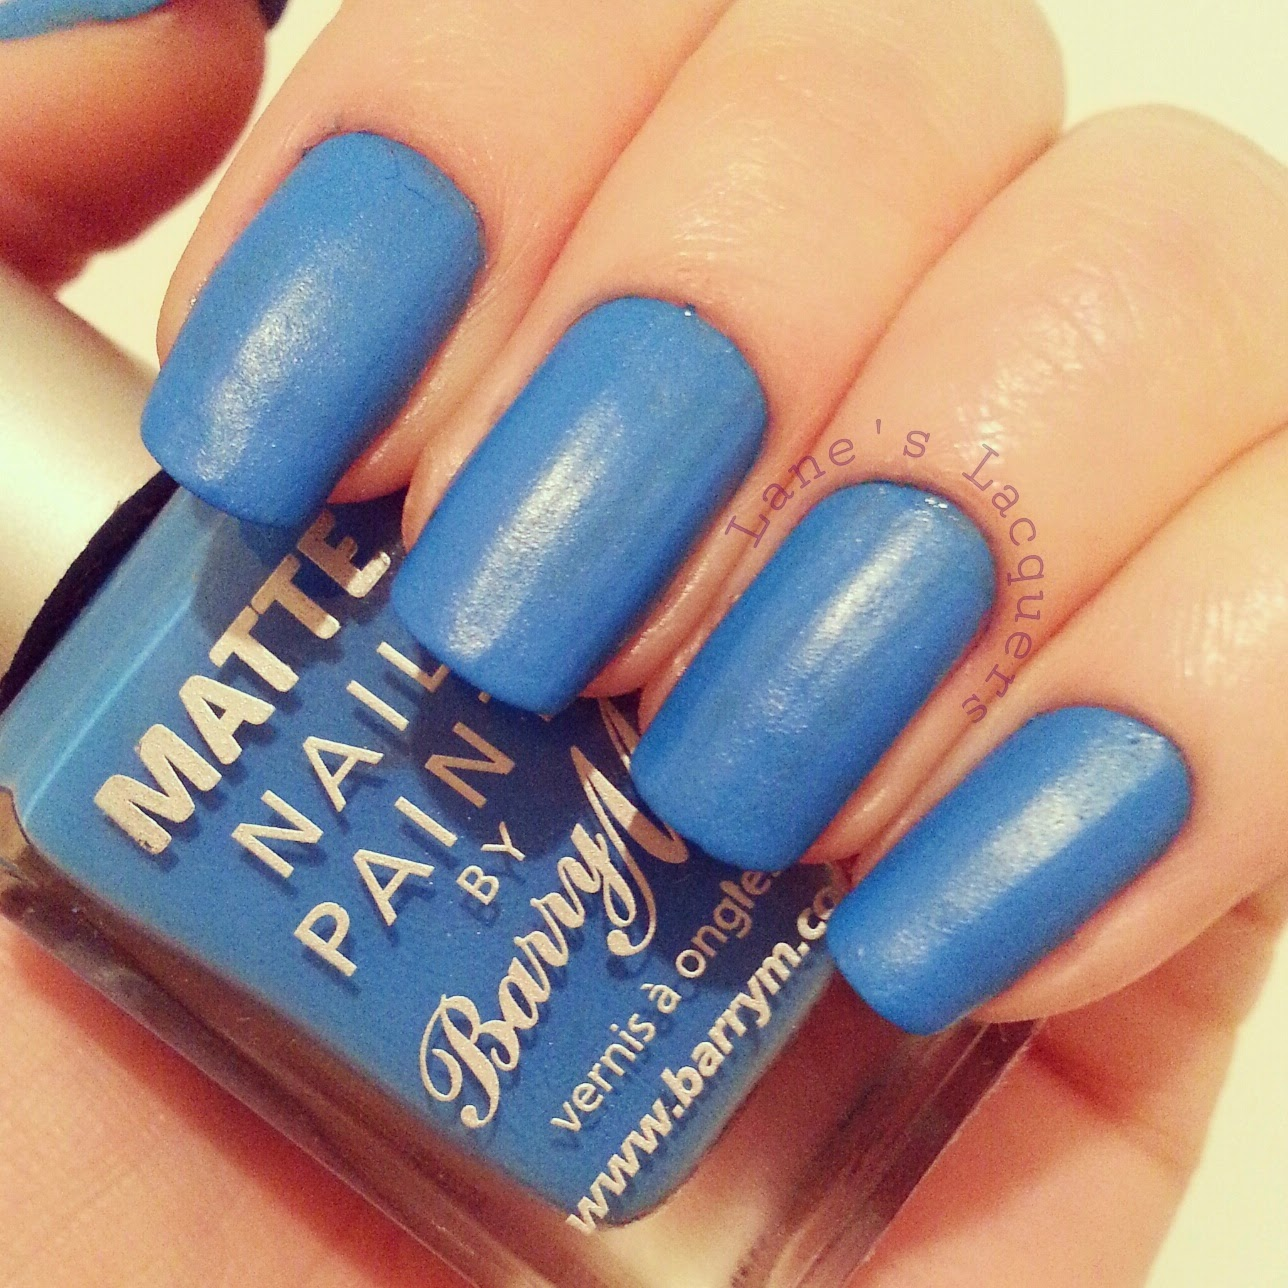 barry-m-malibu-swatch-manicure (2)